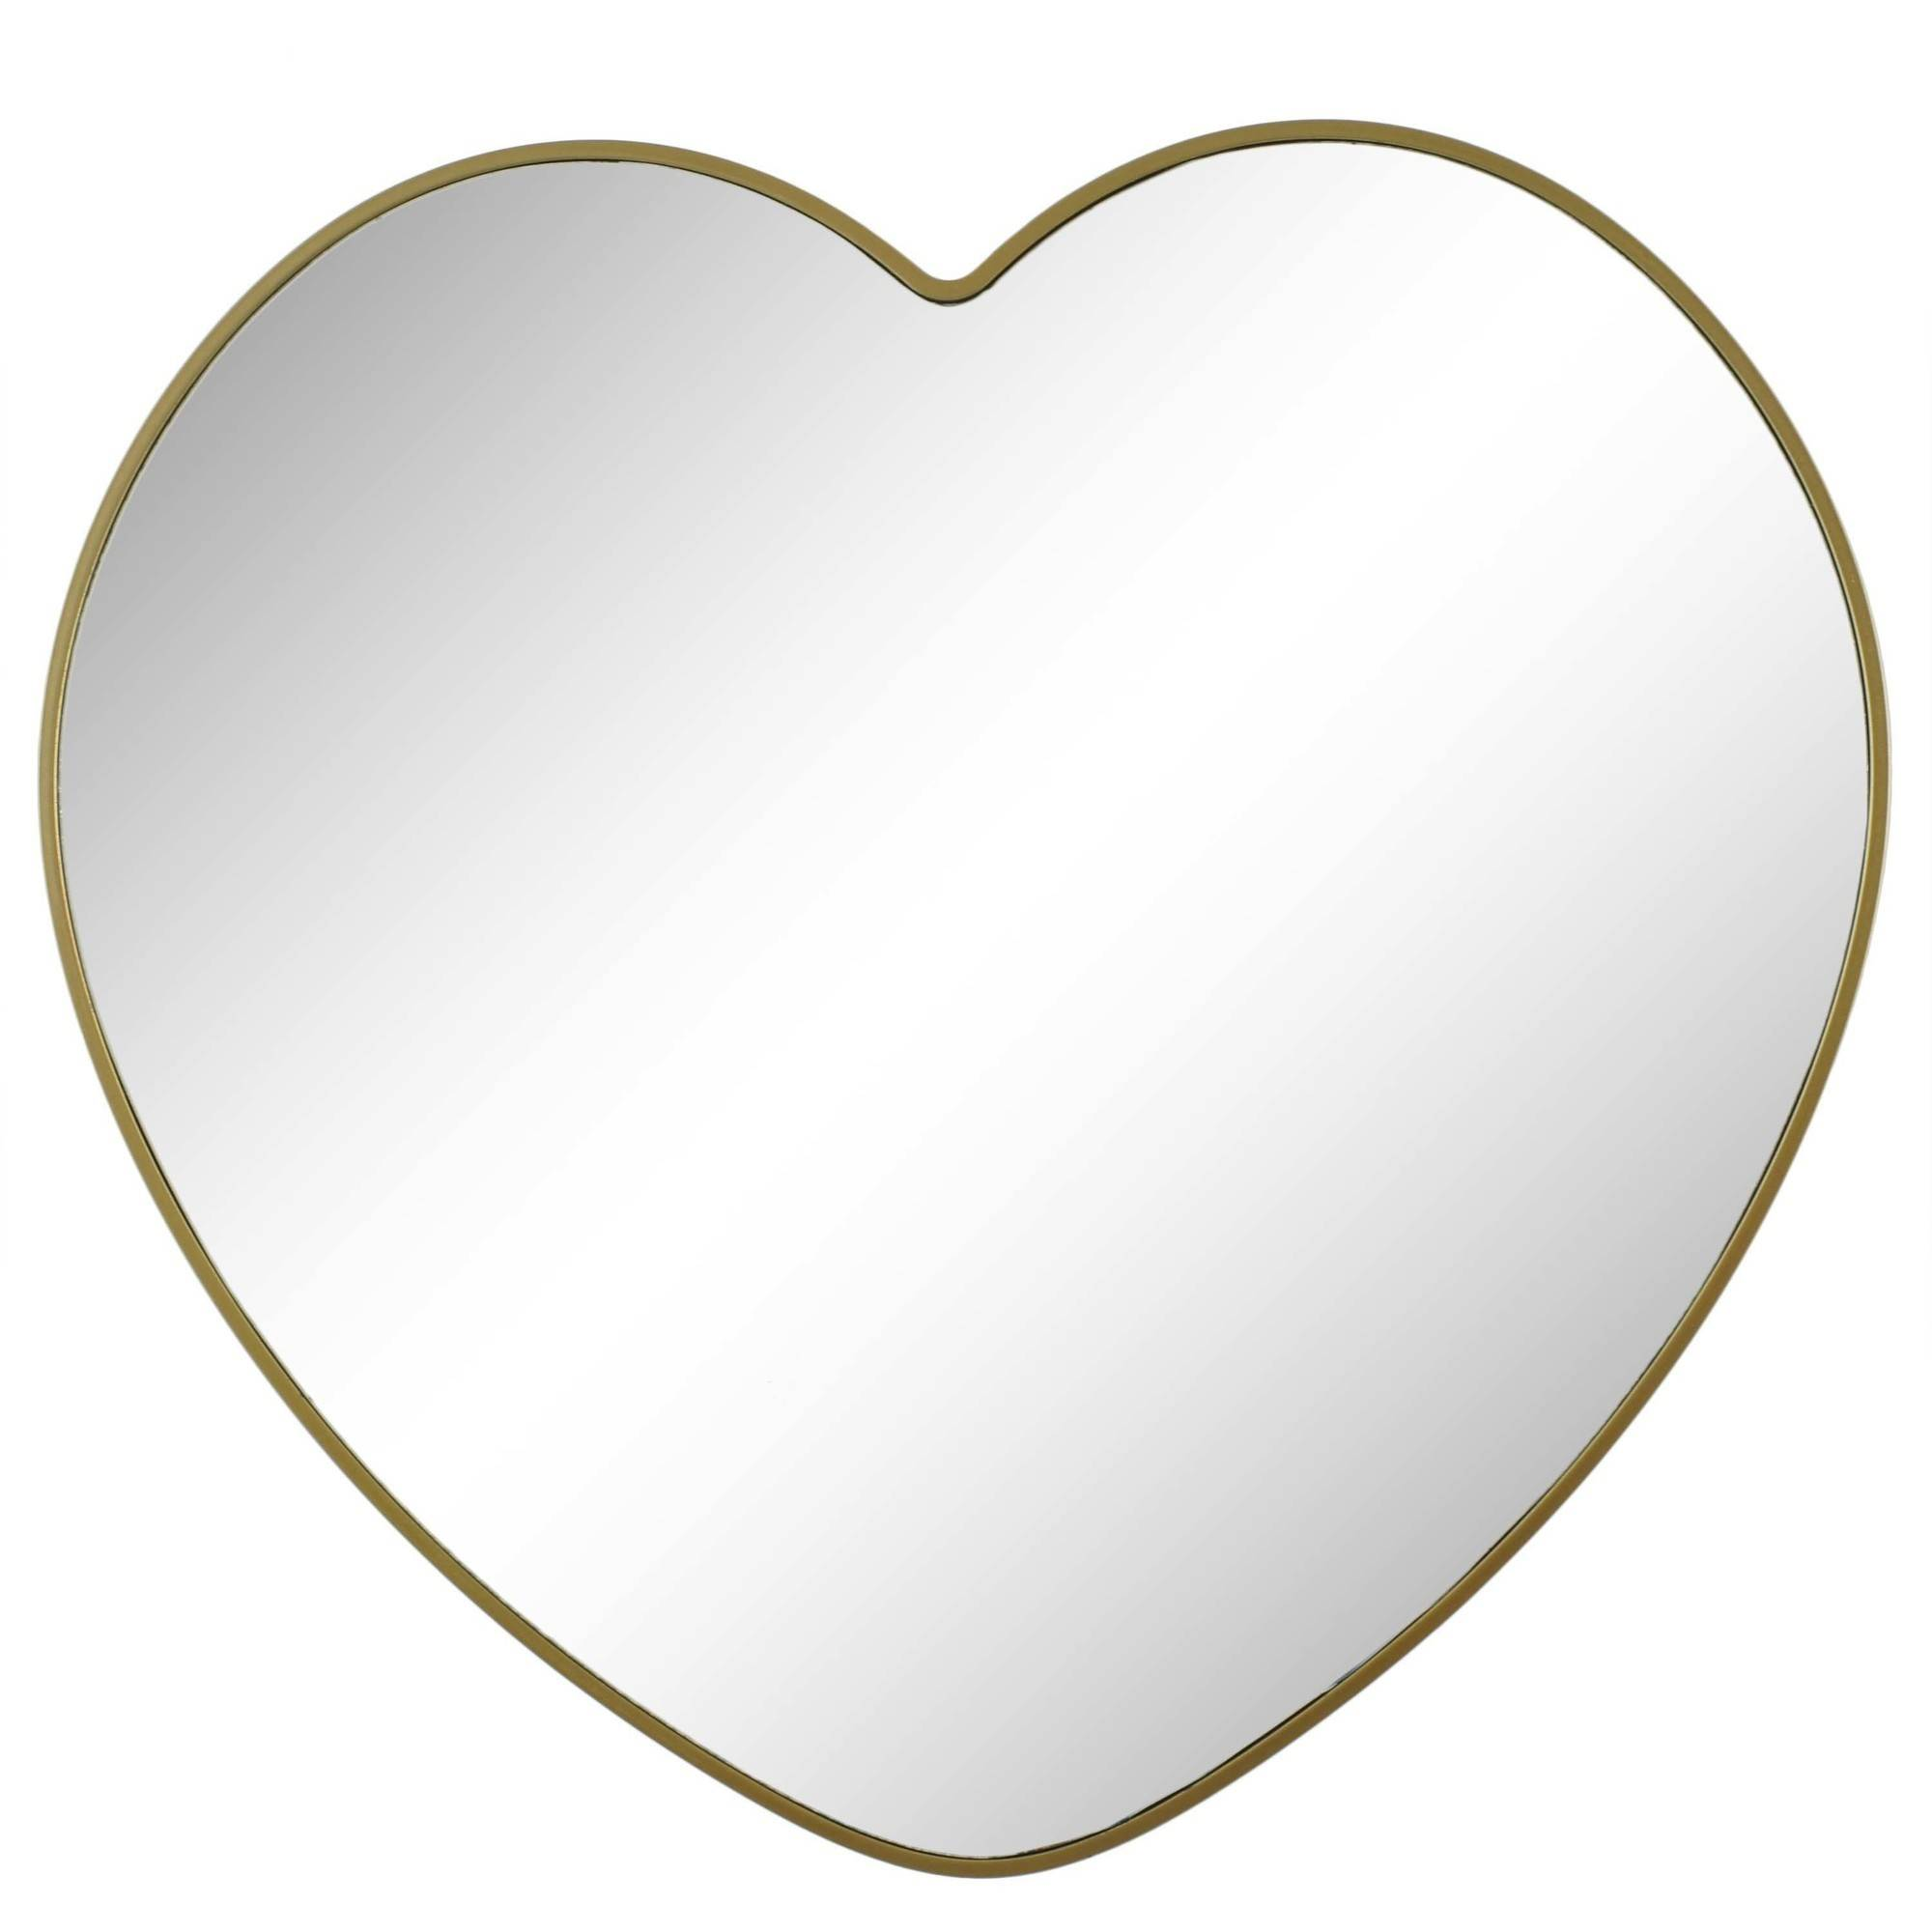 "Better Homes and Gardens 15.5"" (39.37 cm) Heart Mirror by"